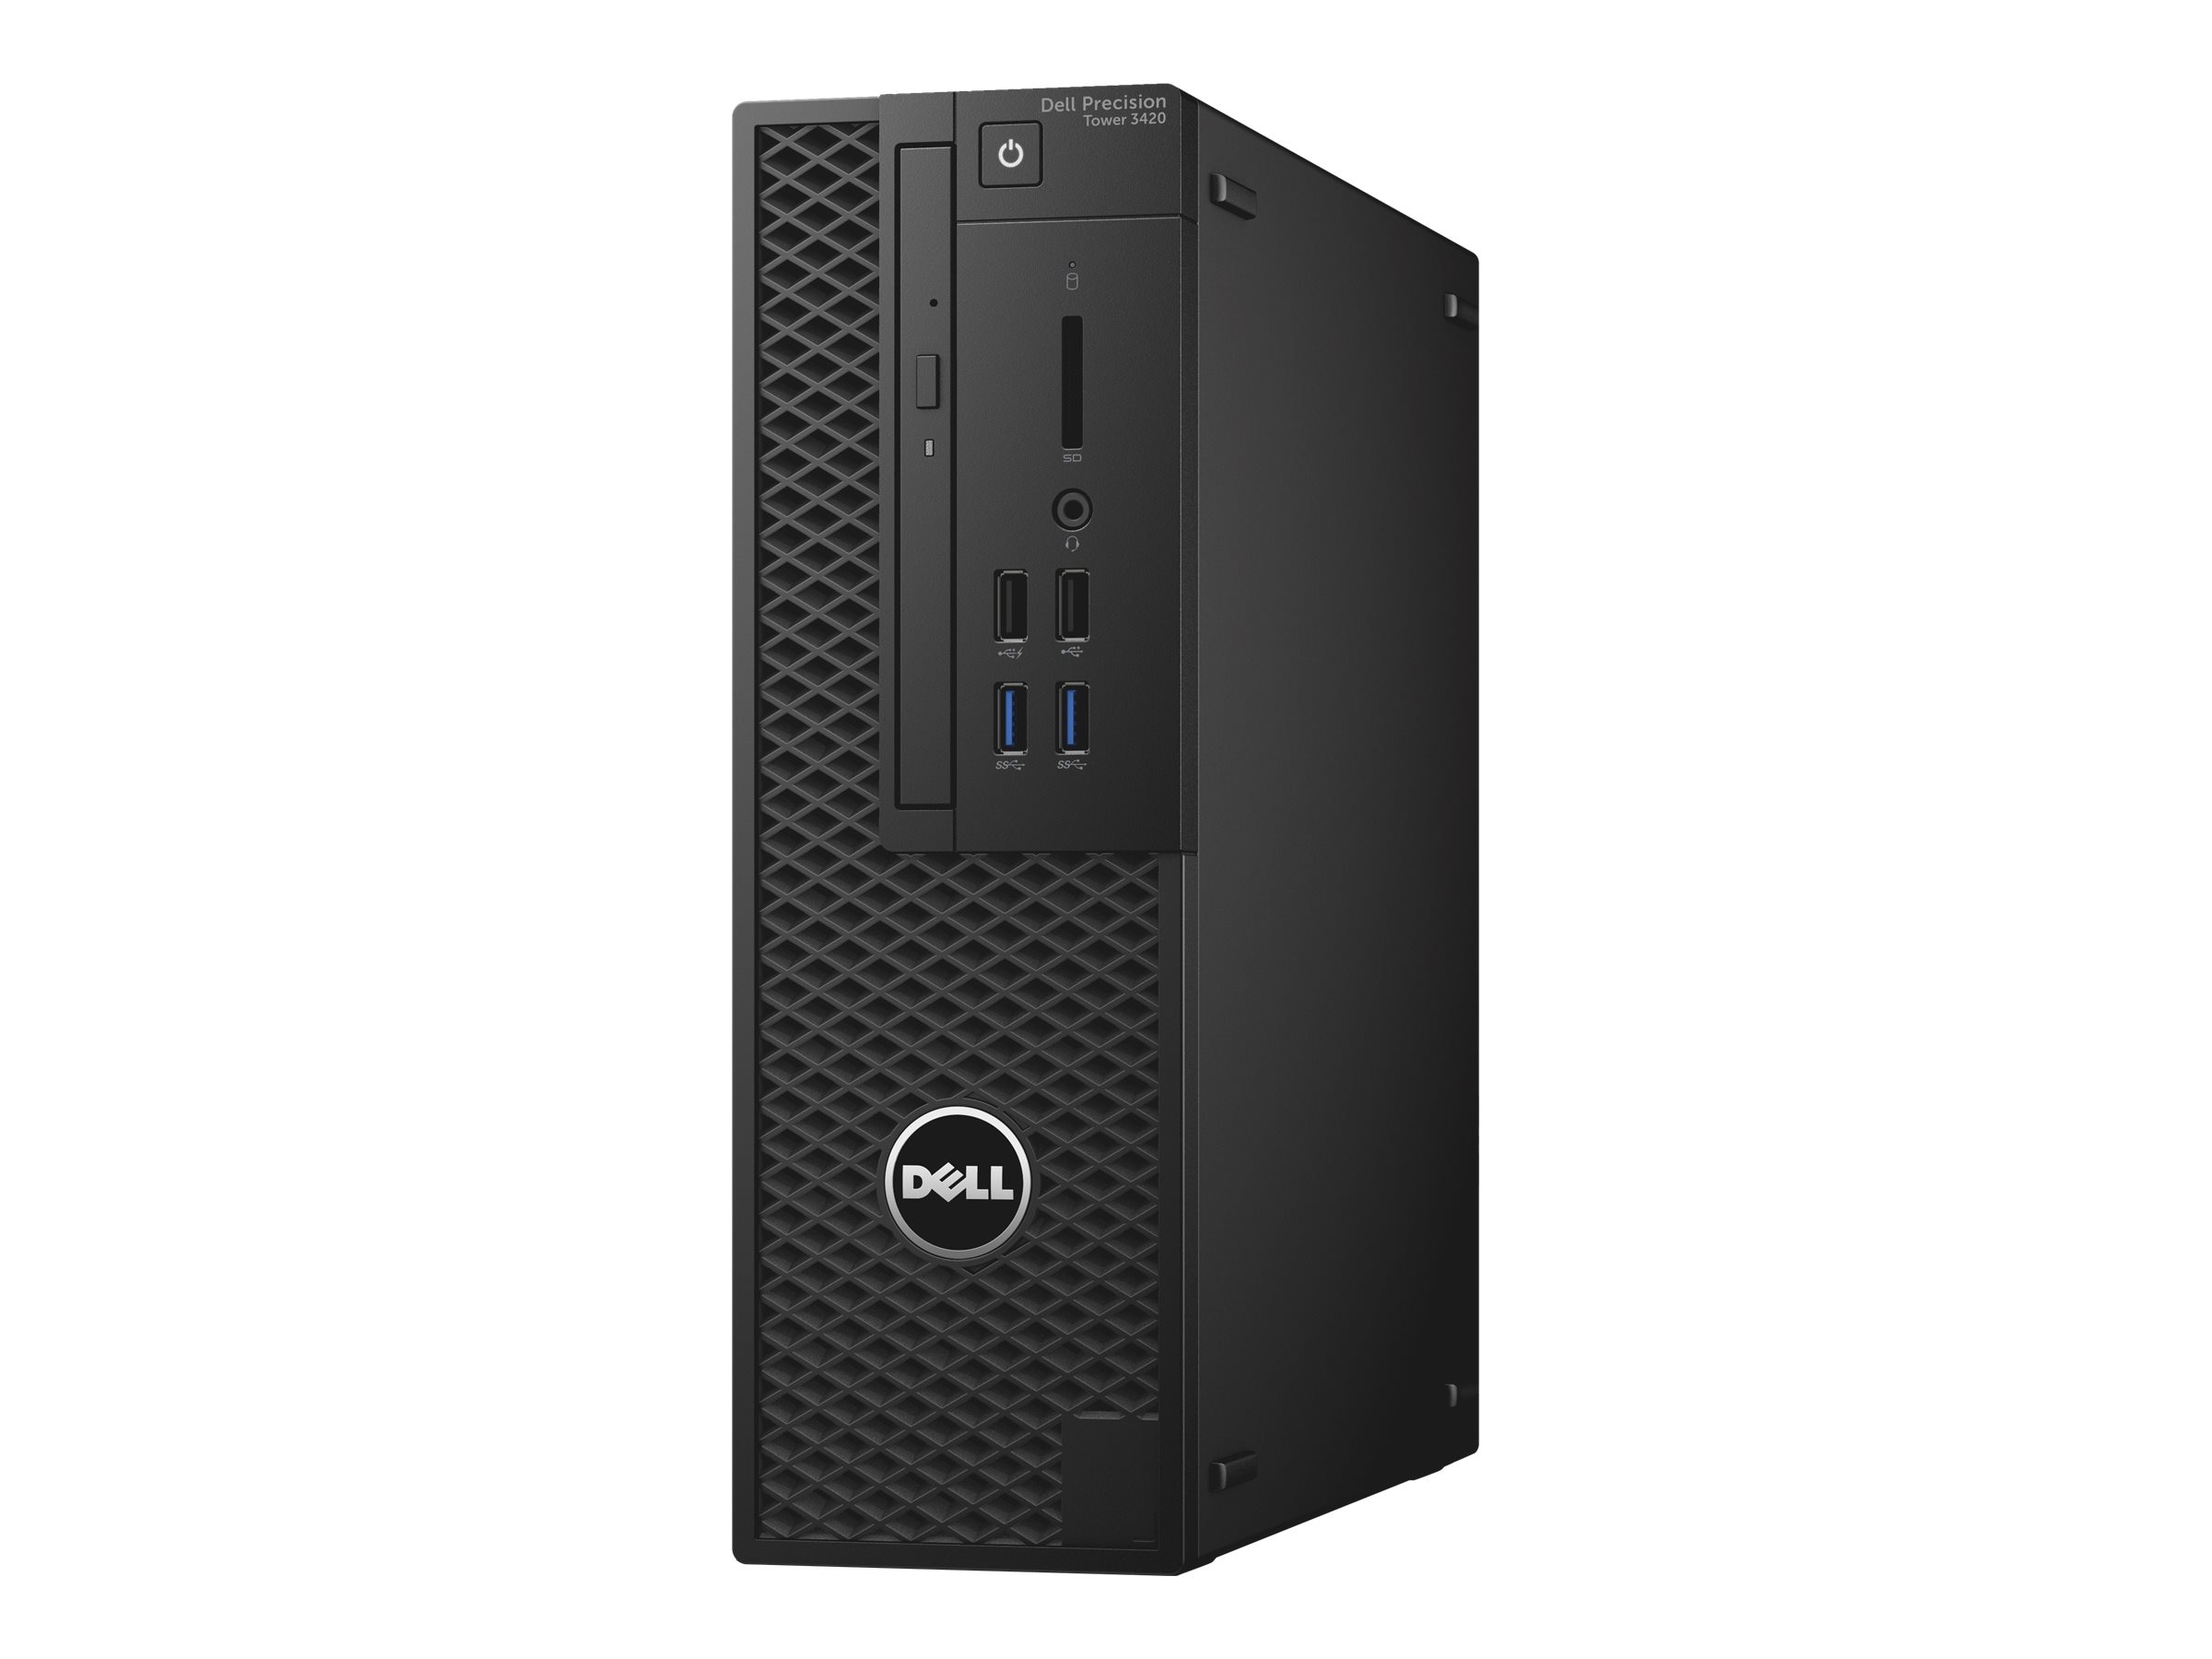 Dell Precision 3420 3.4GHz Core i7 Microsoft Windows 7 Professional 64-bit Edition   Windows 10 Pro